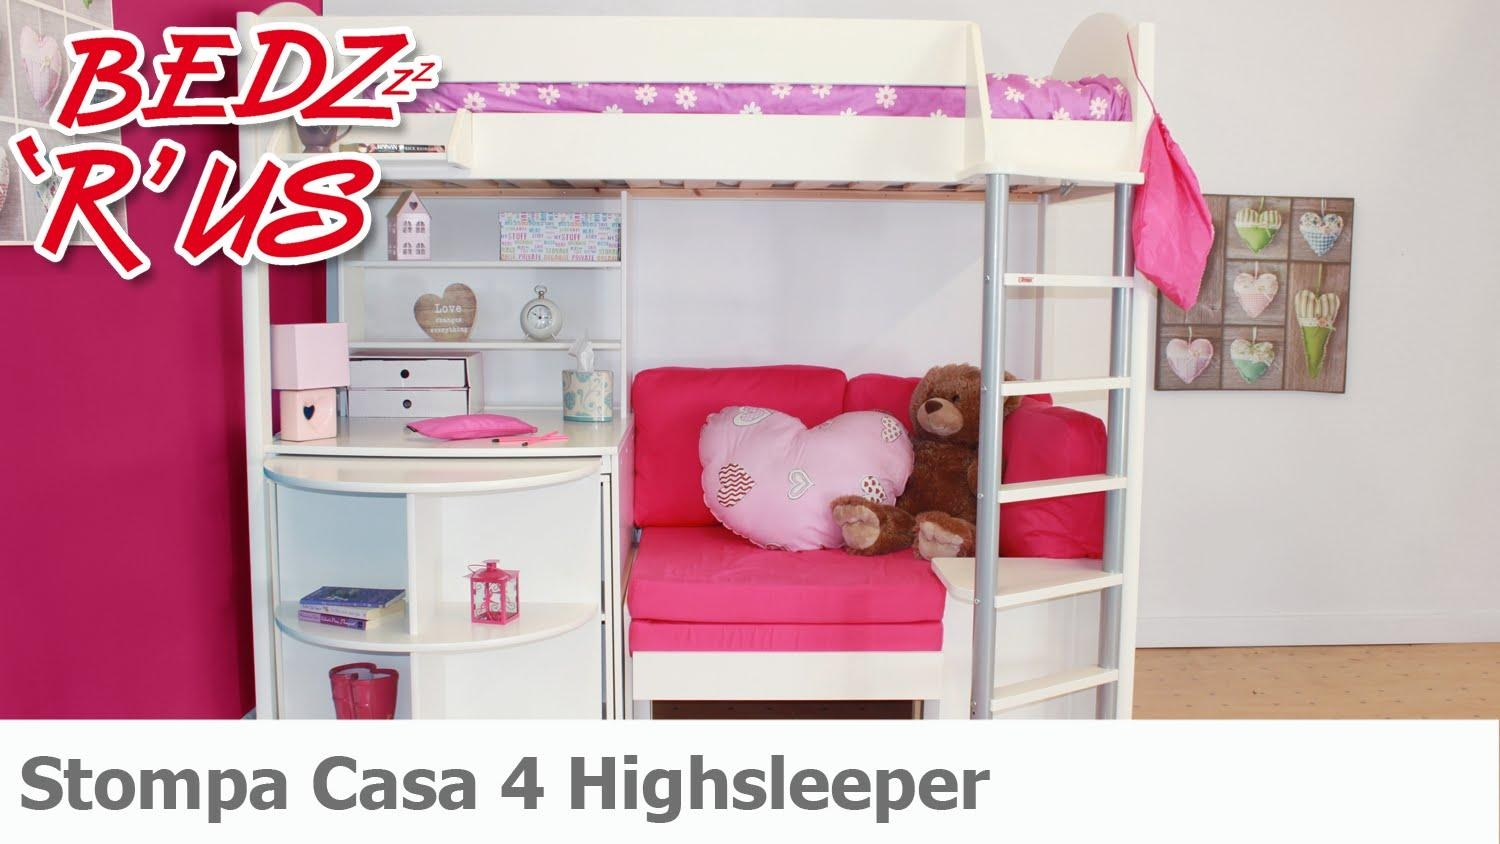 Stompa Casa 4 Highsleeper Bed – Bedzrus – Youtube Within High Sleeper Bed With Sofa (Image 12 of 20)